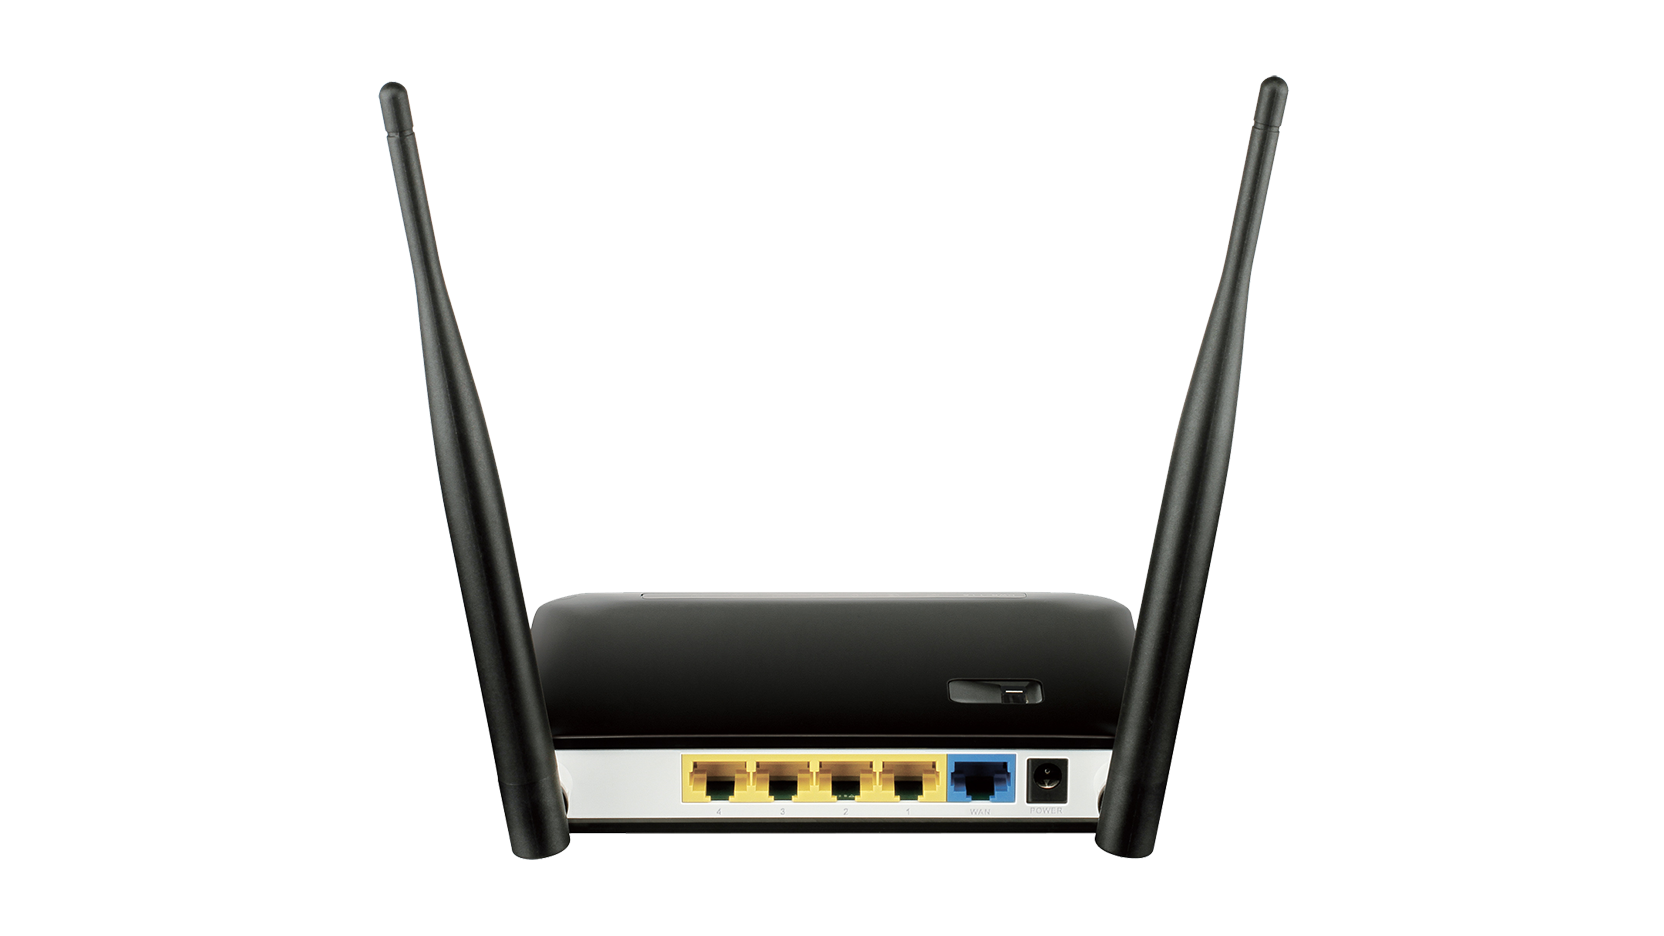 4G LTE Mobile Broadband N300 WiFi Router